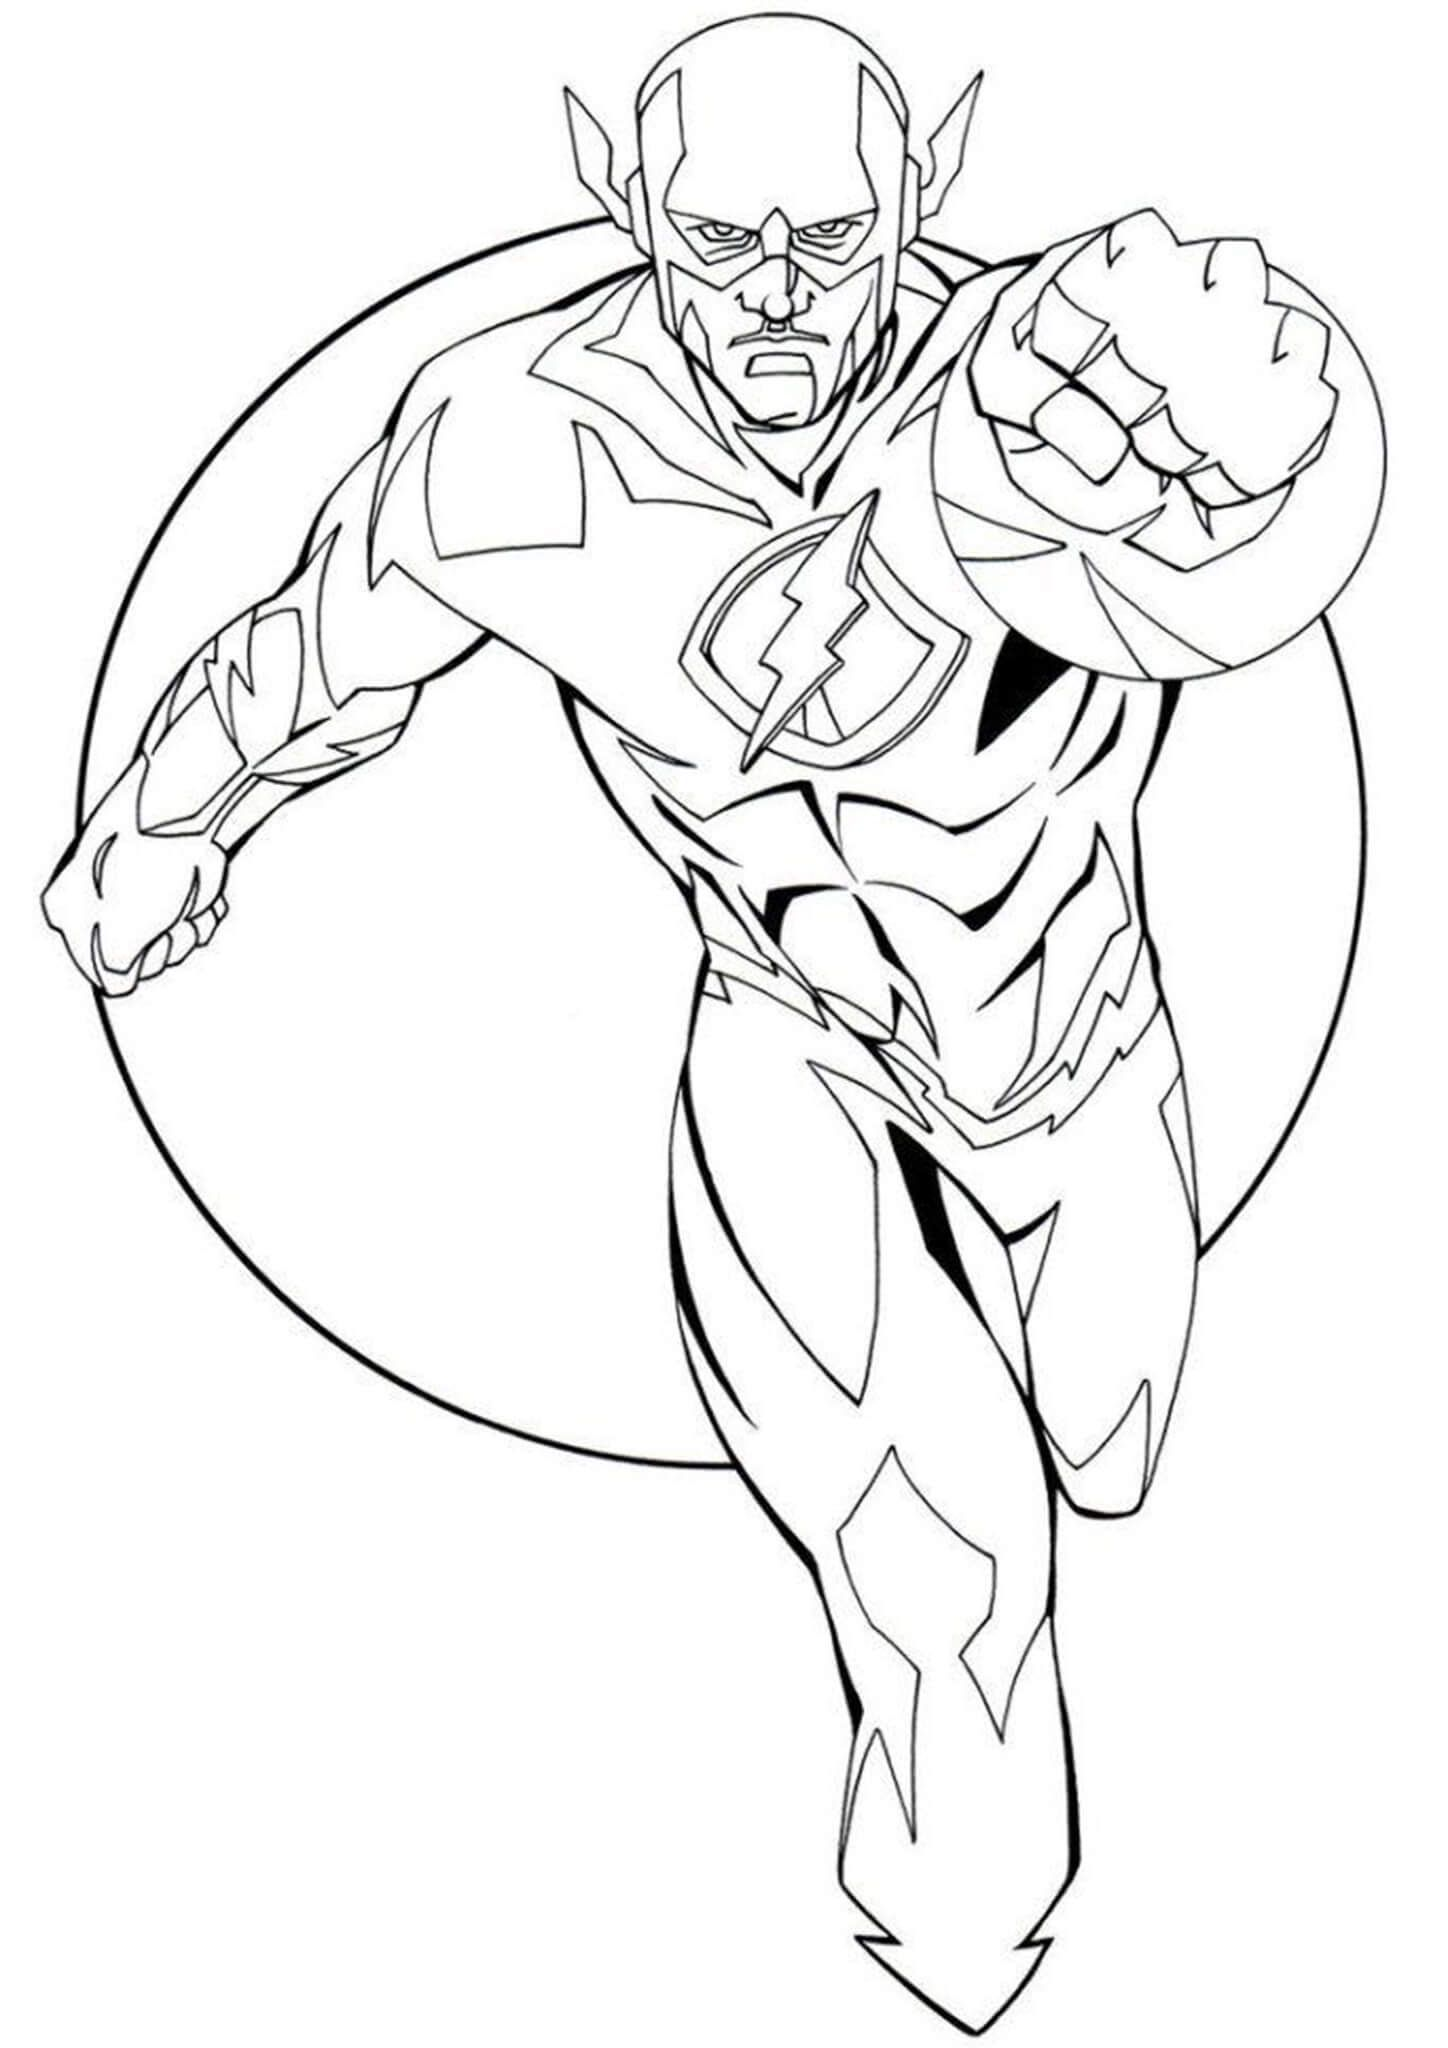 Free & Easy To Print Flash Coloring Pages  Superhero coloring